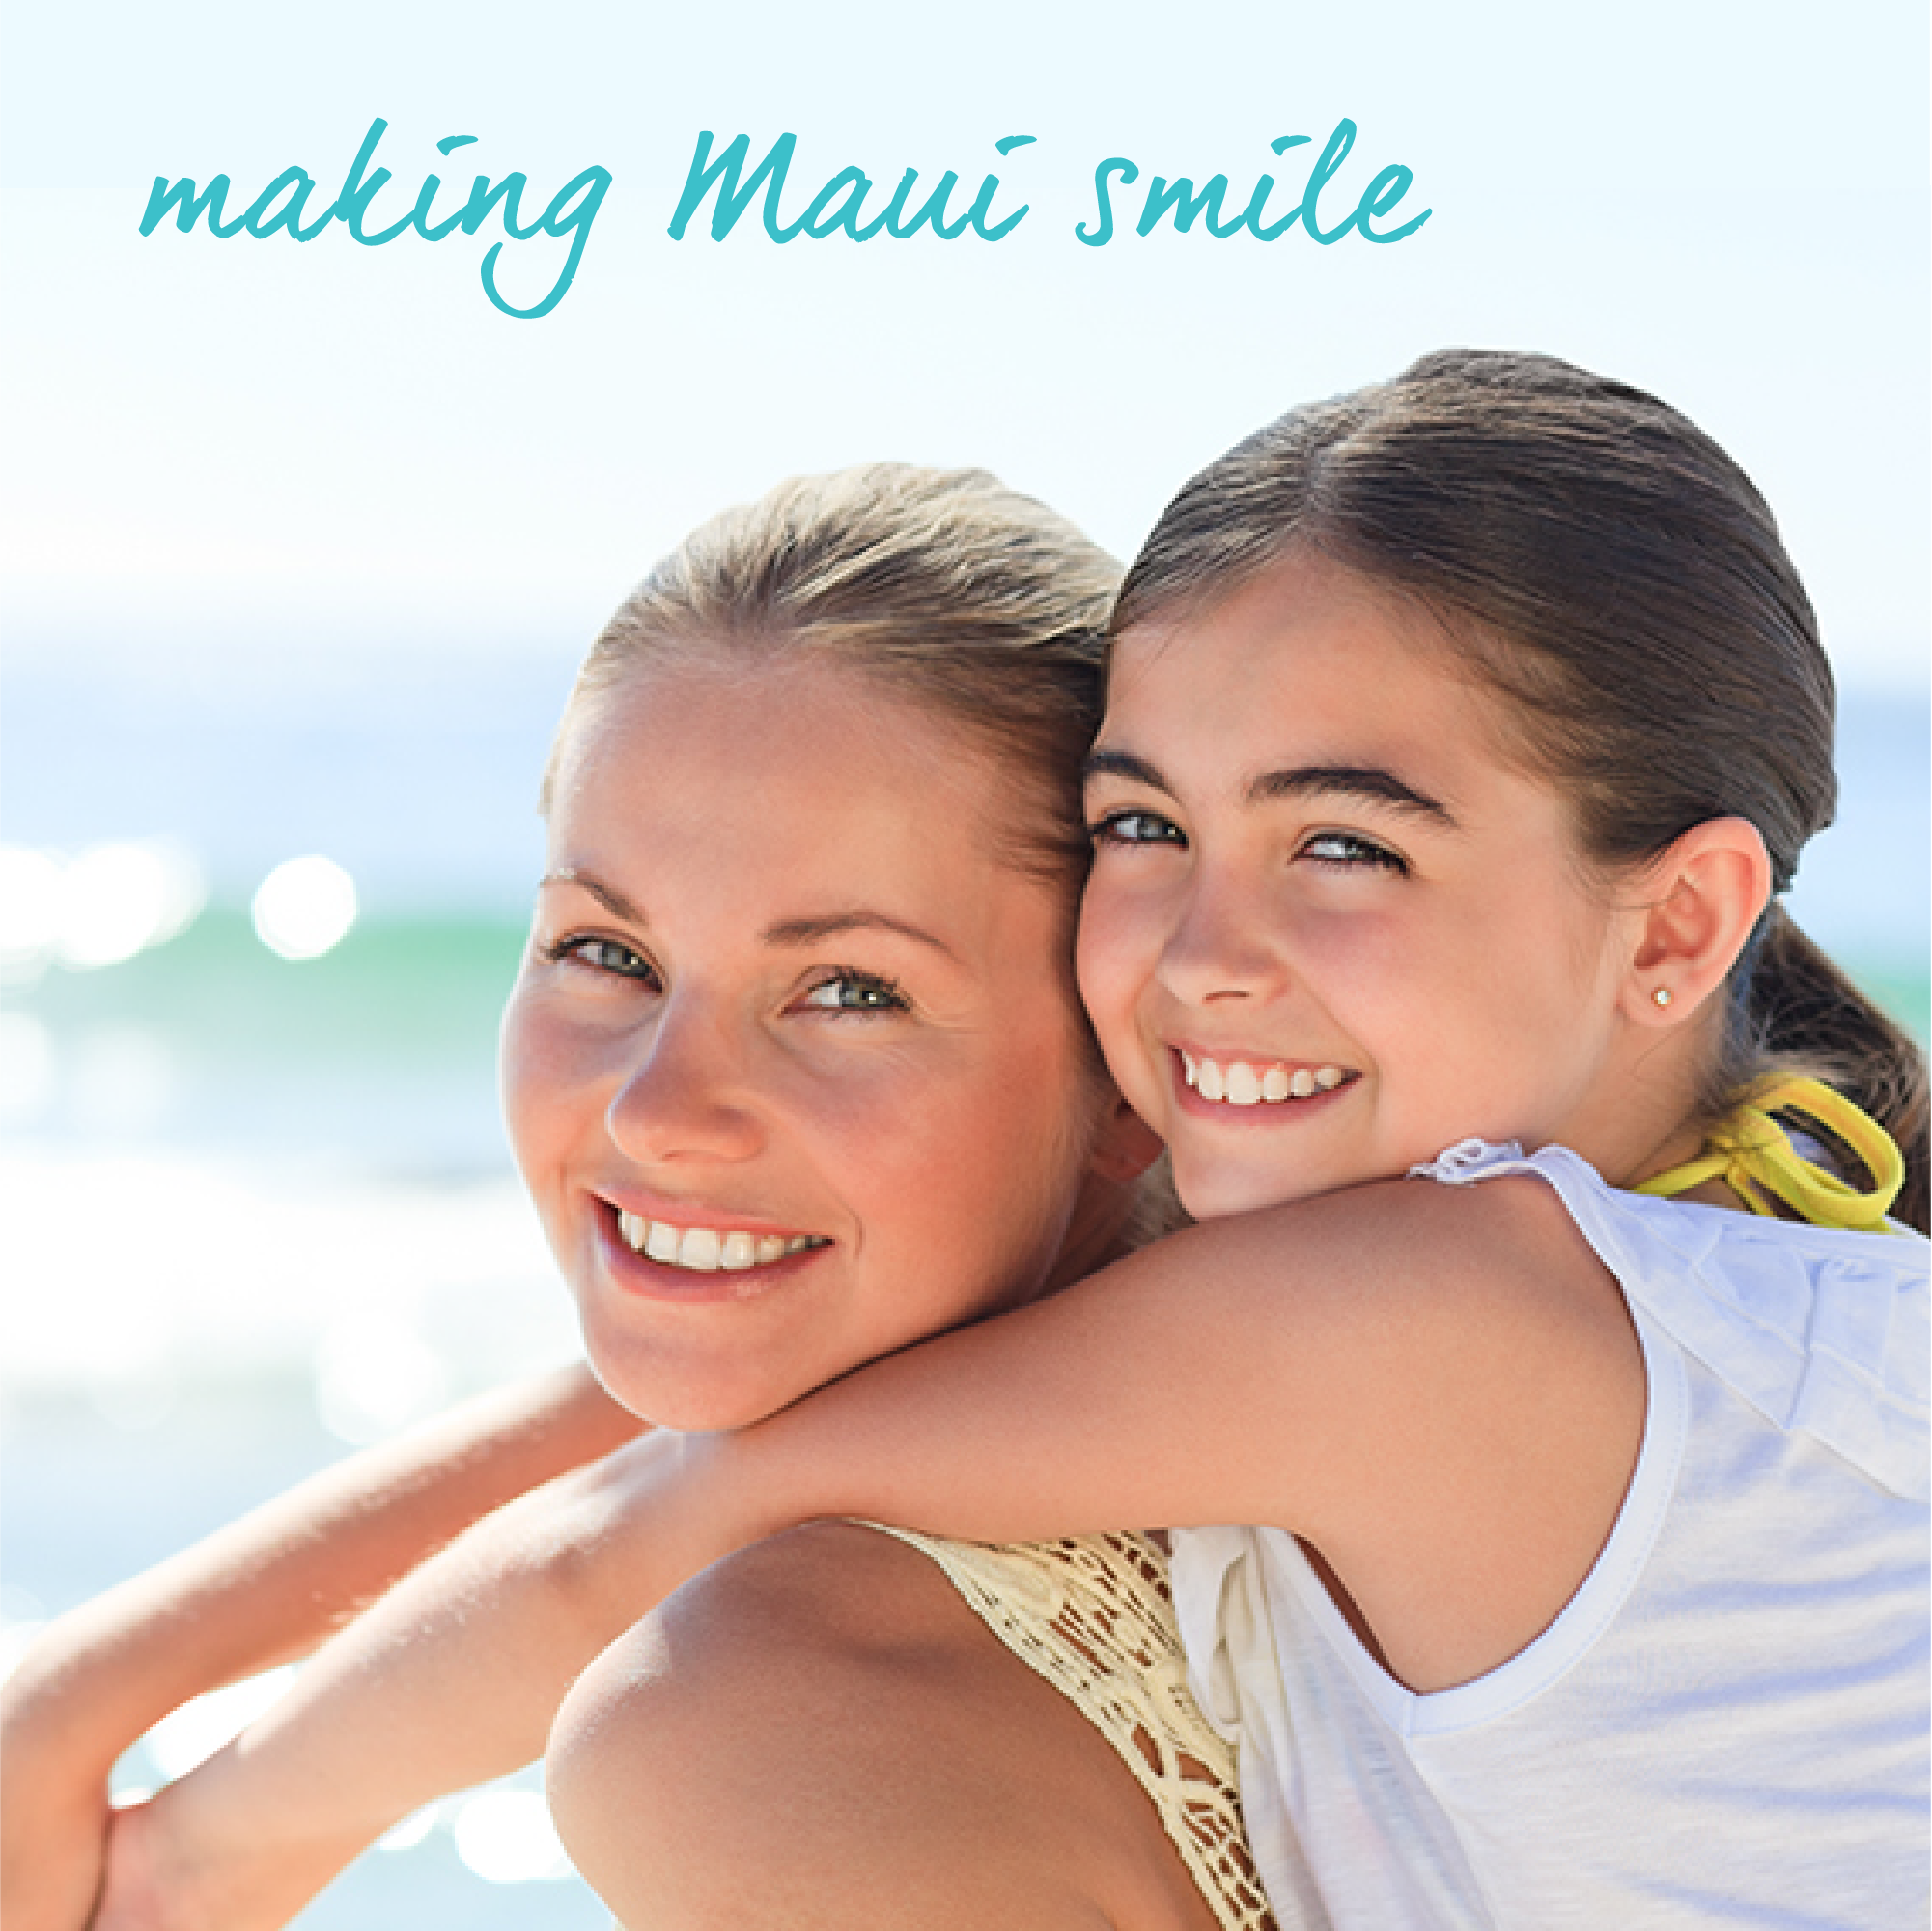 Making Maui Smile